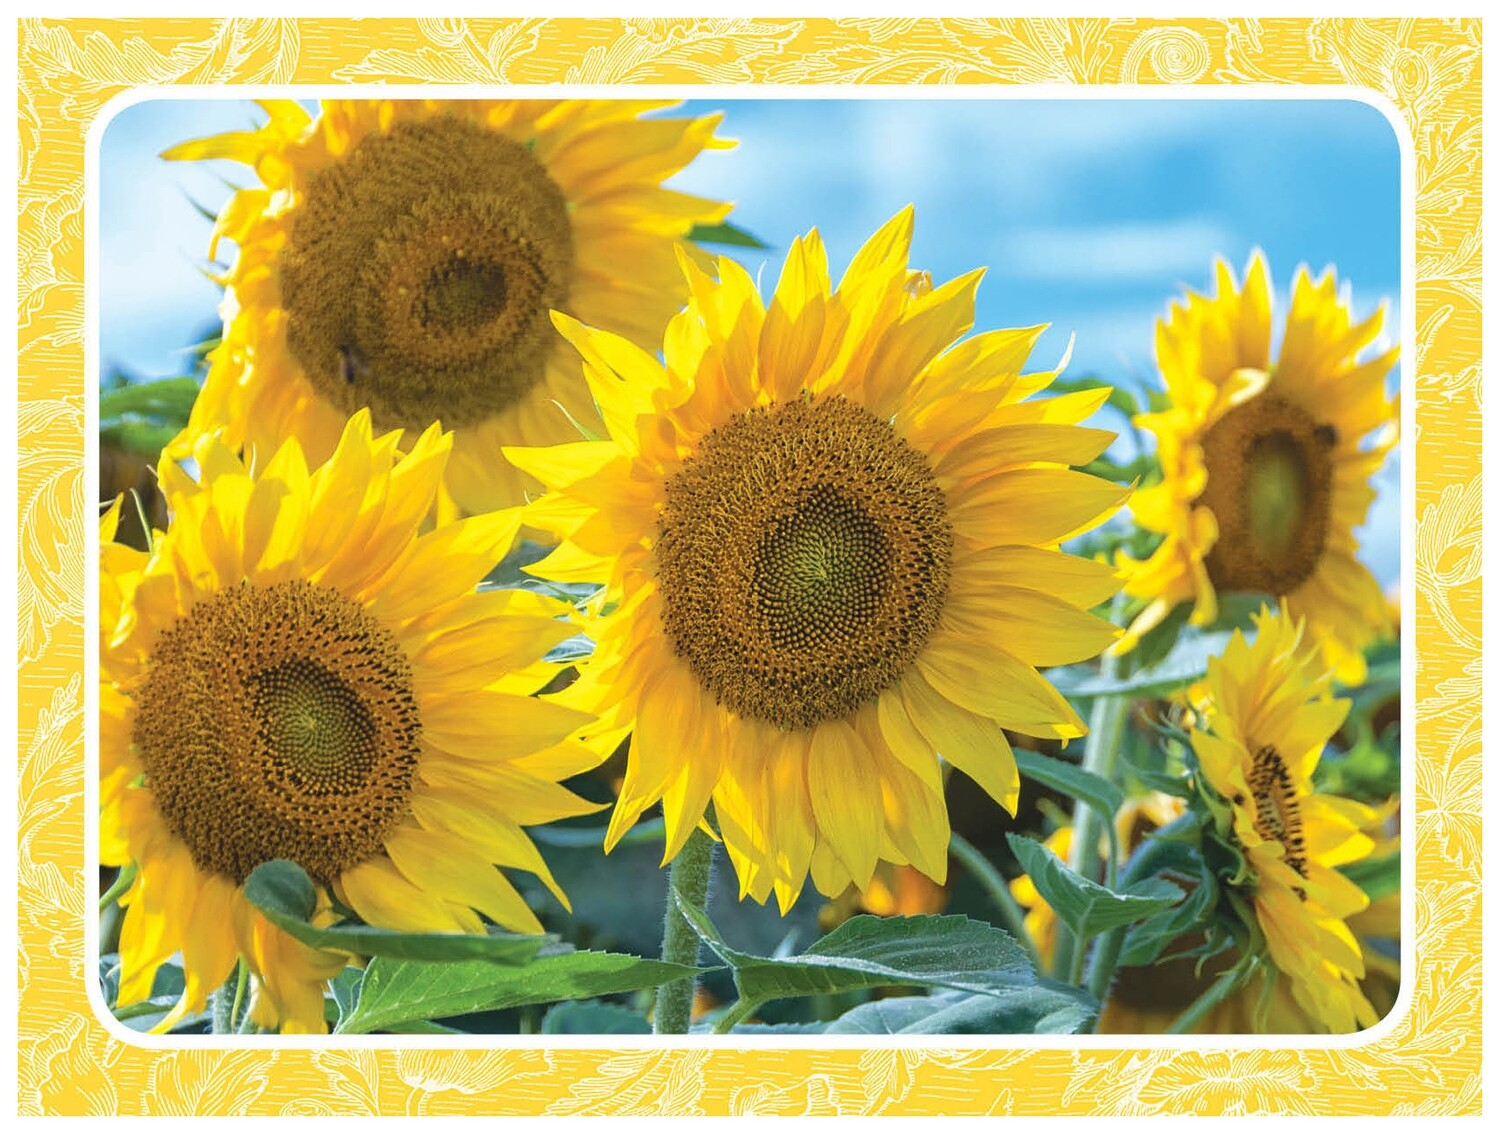 FR4089 Boxed Note Card